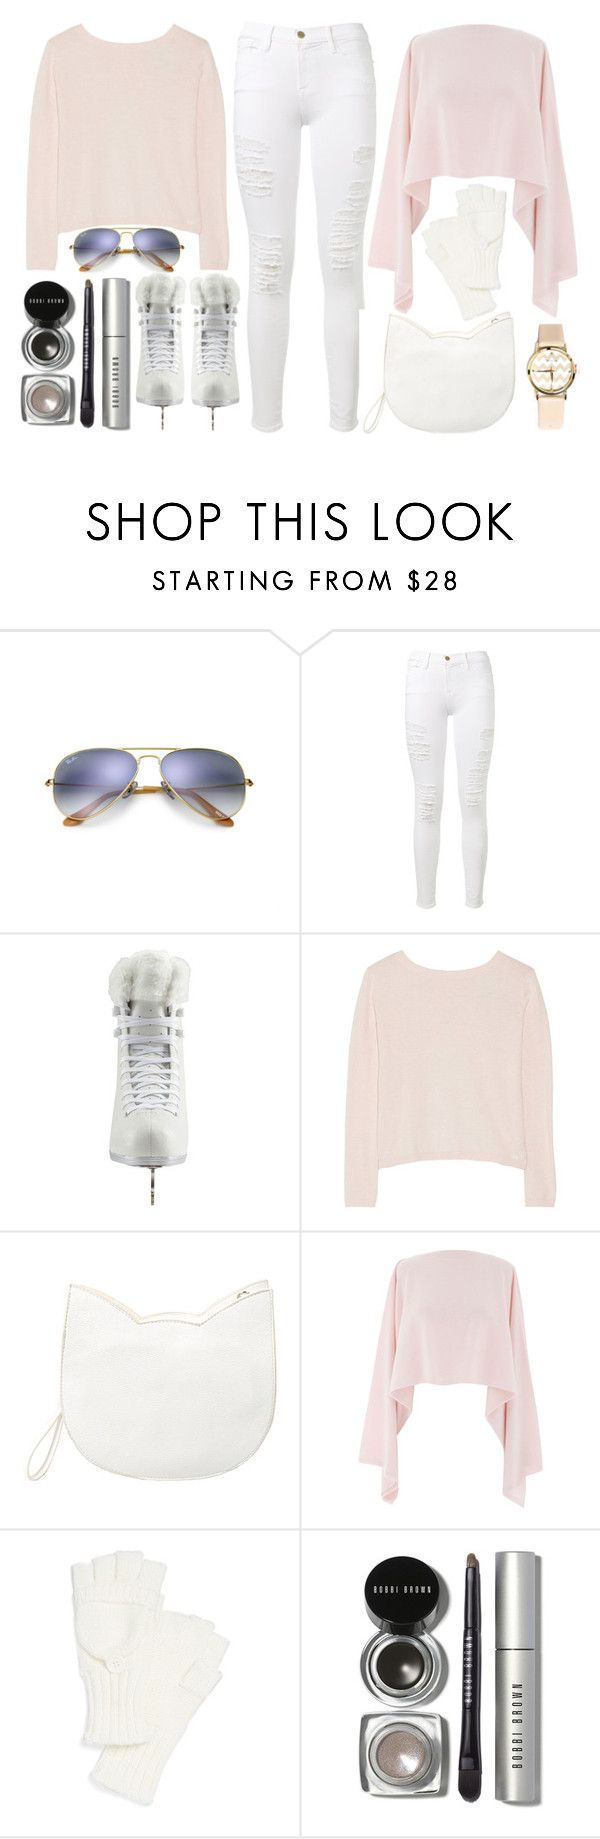 """:: ice skating all day long ::"" by andreearucsandraedu ❤ liked on Polyvore featuring Ray-Ban, Frame Denim, Artistique, Banjo & Matilda, Forever 21, Henri Bendel, Echo, Bobbi Brown Cosmetics, Timing and winterwhite"